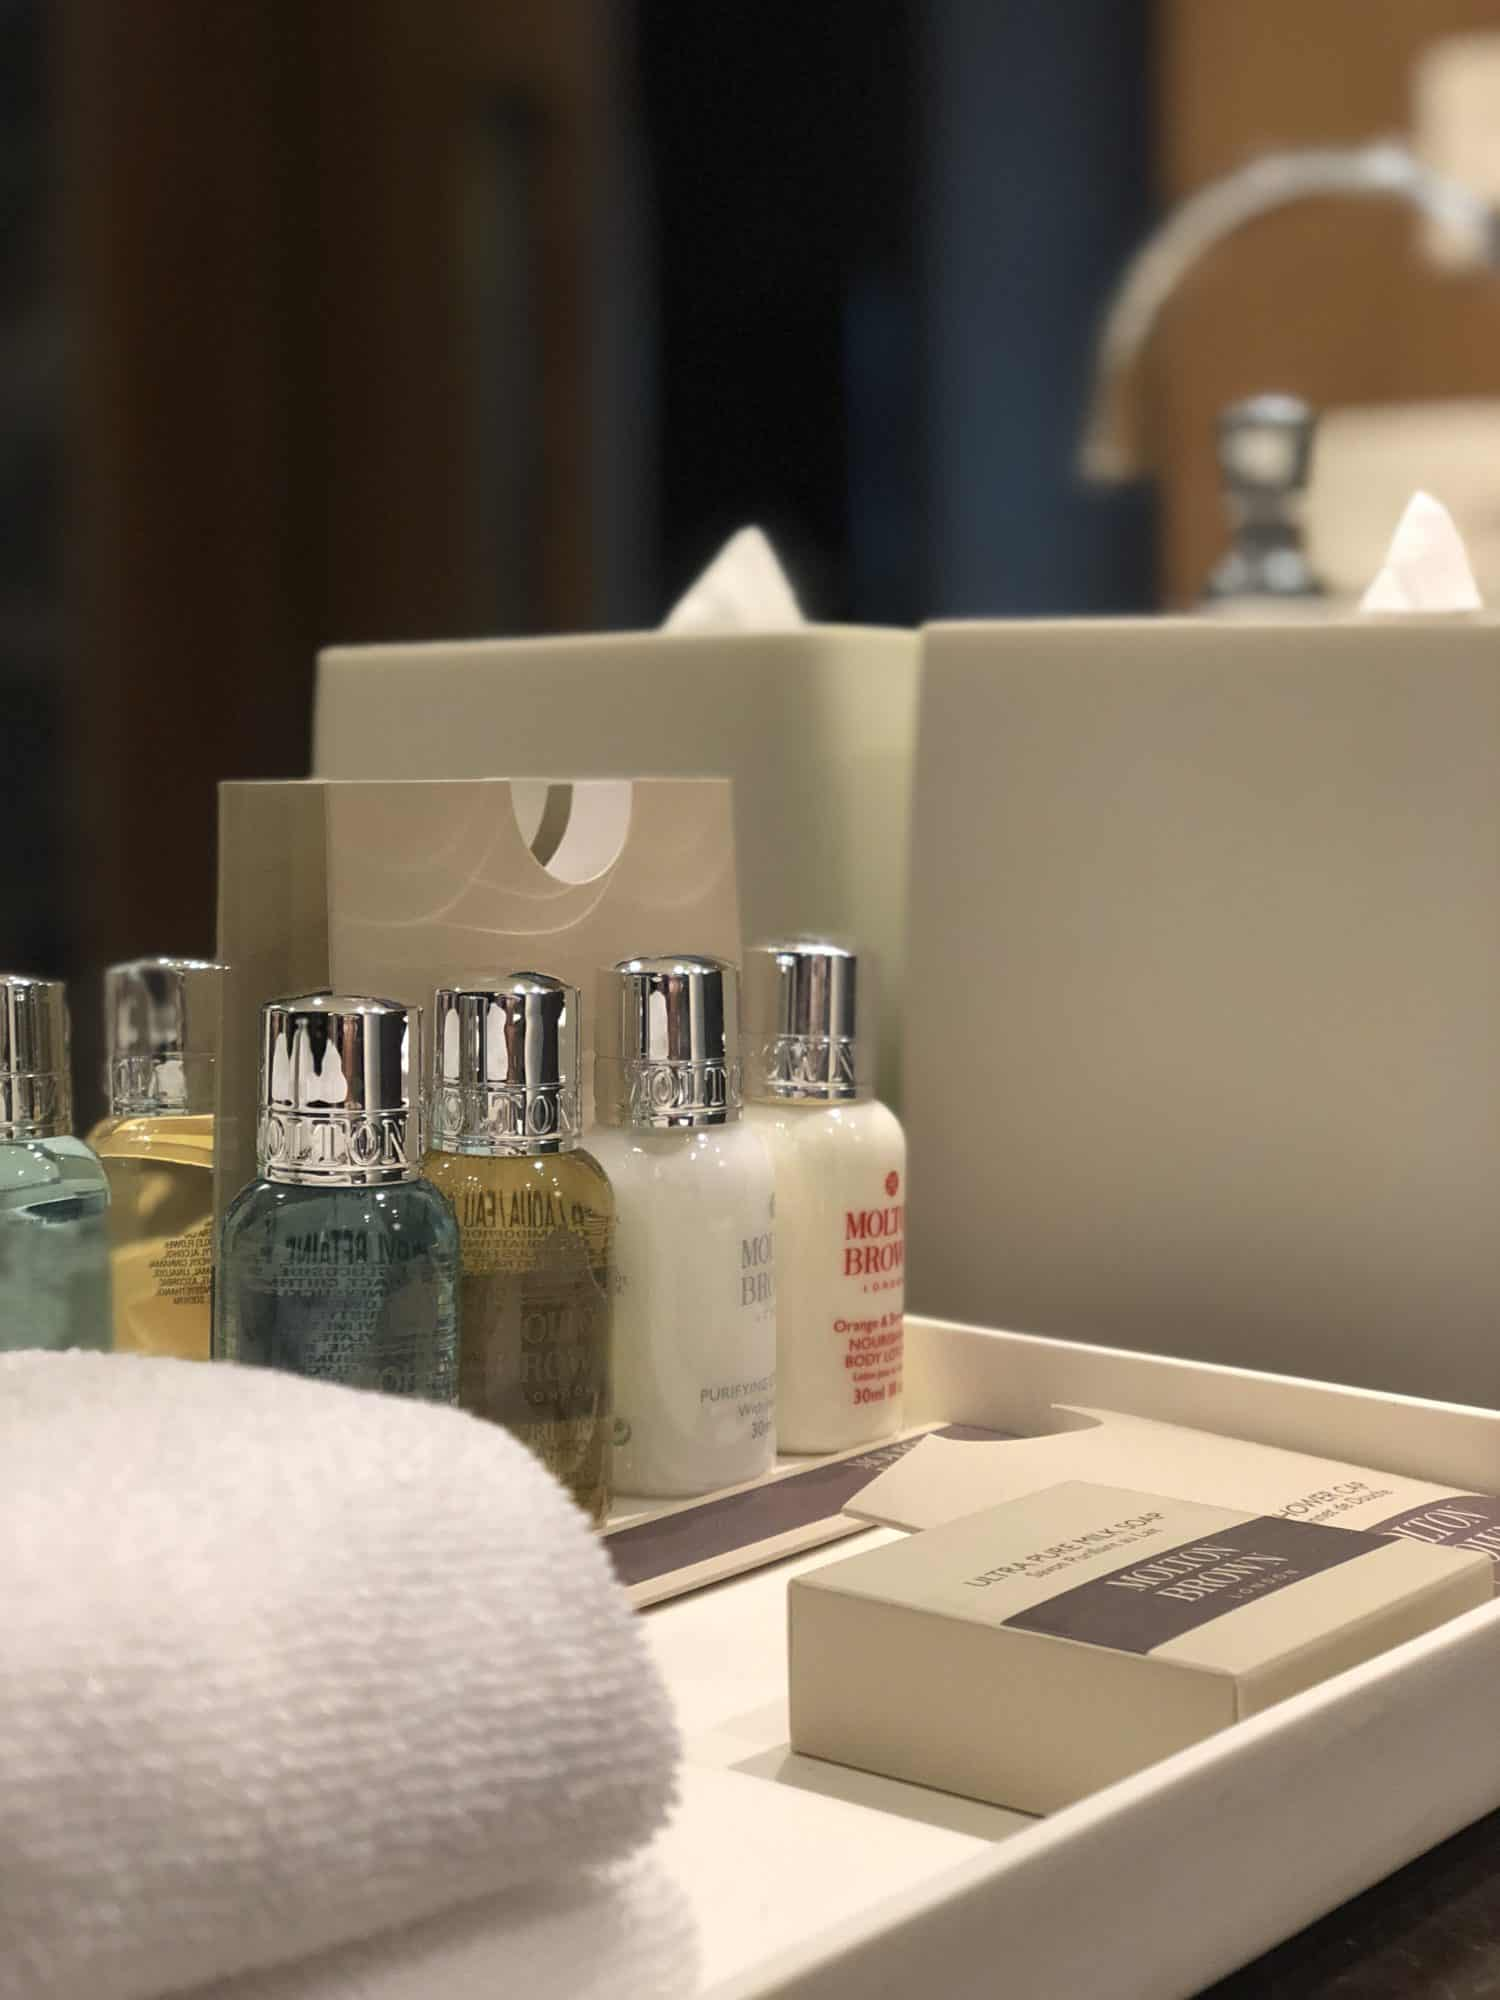 Molton Brown Produkte im Bad des Loden Hotels in Vancouver,Kanada